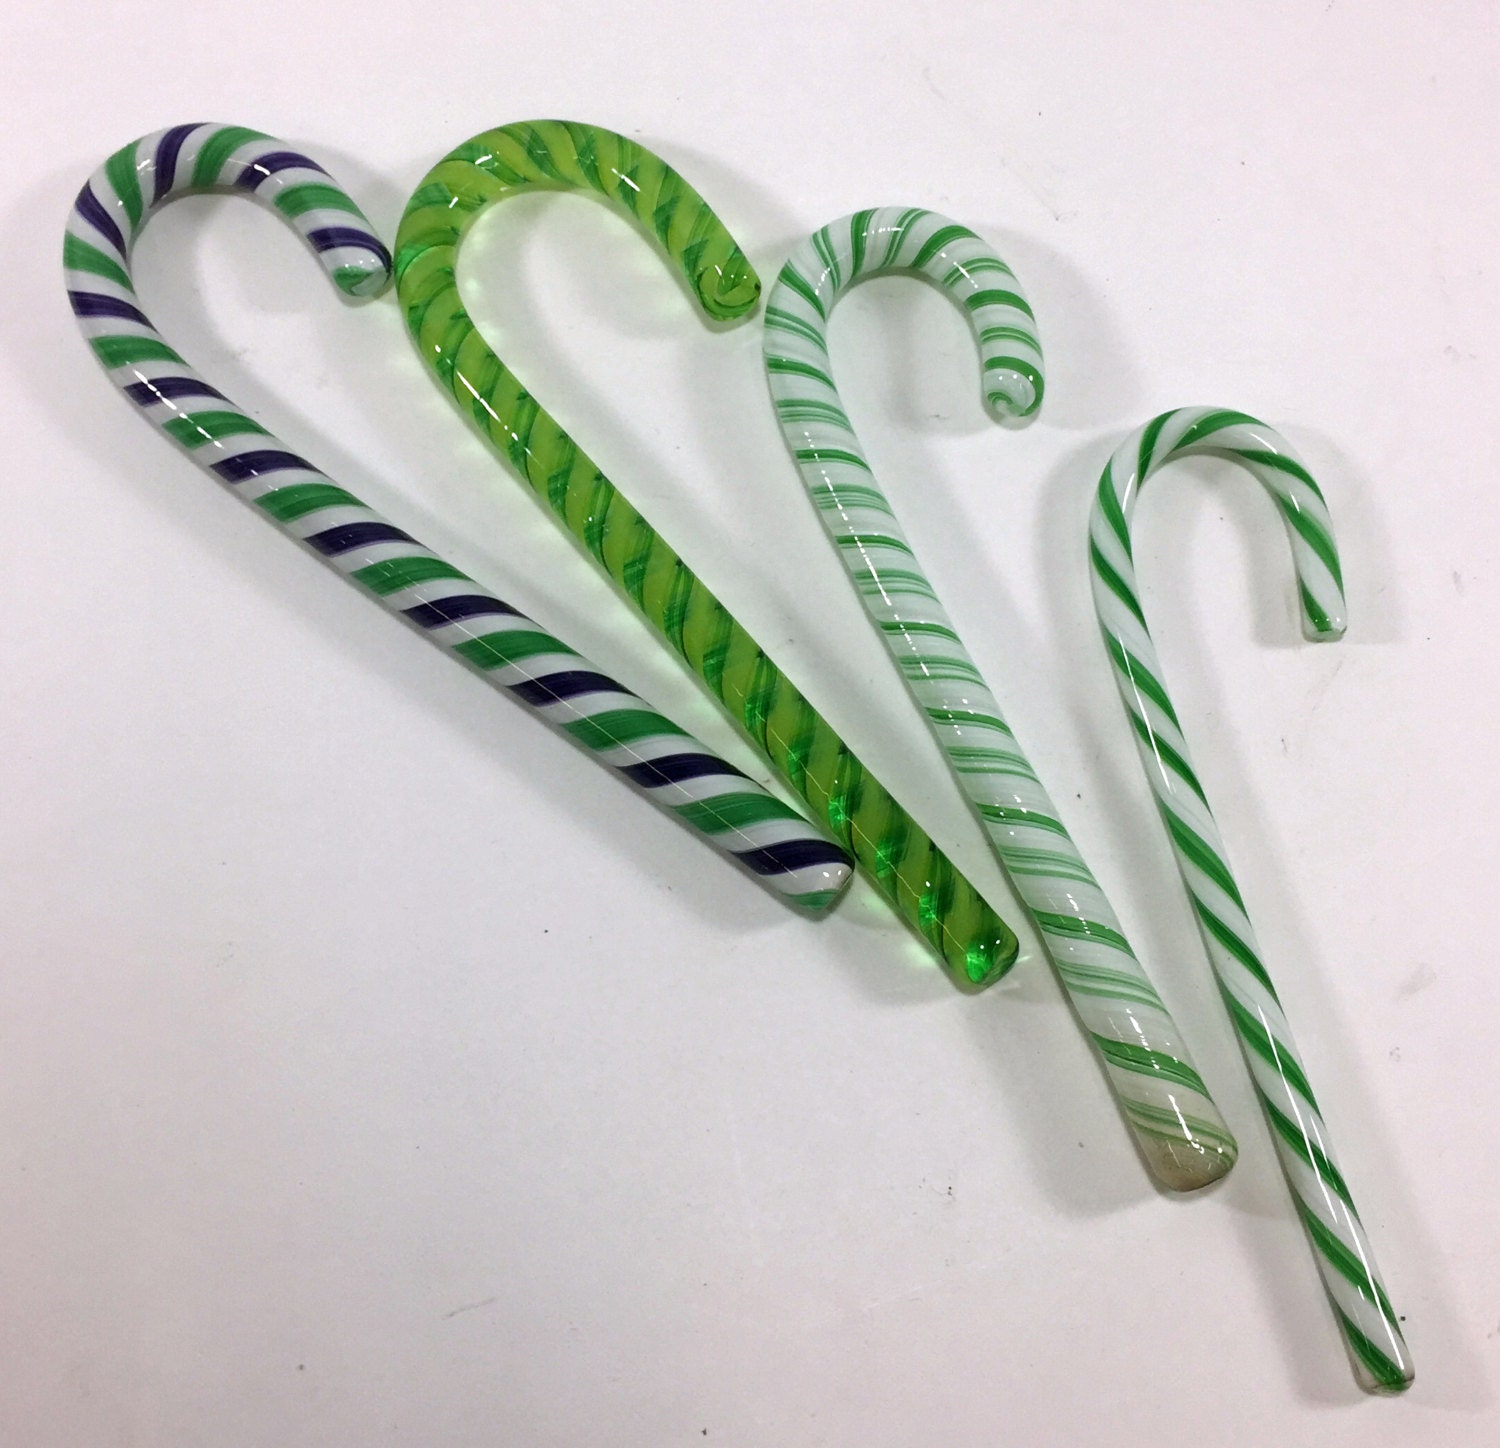 Green stripe glass candy canes handmade by thefurnaceinc